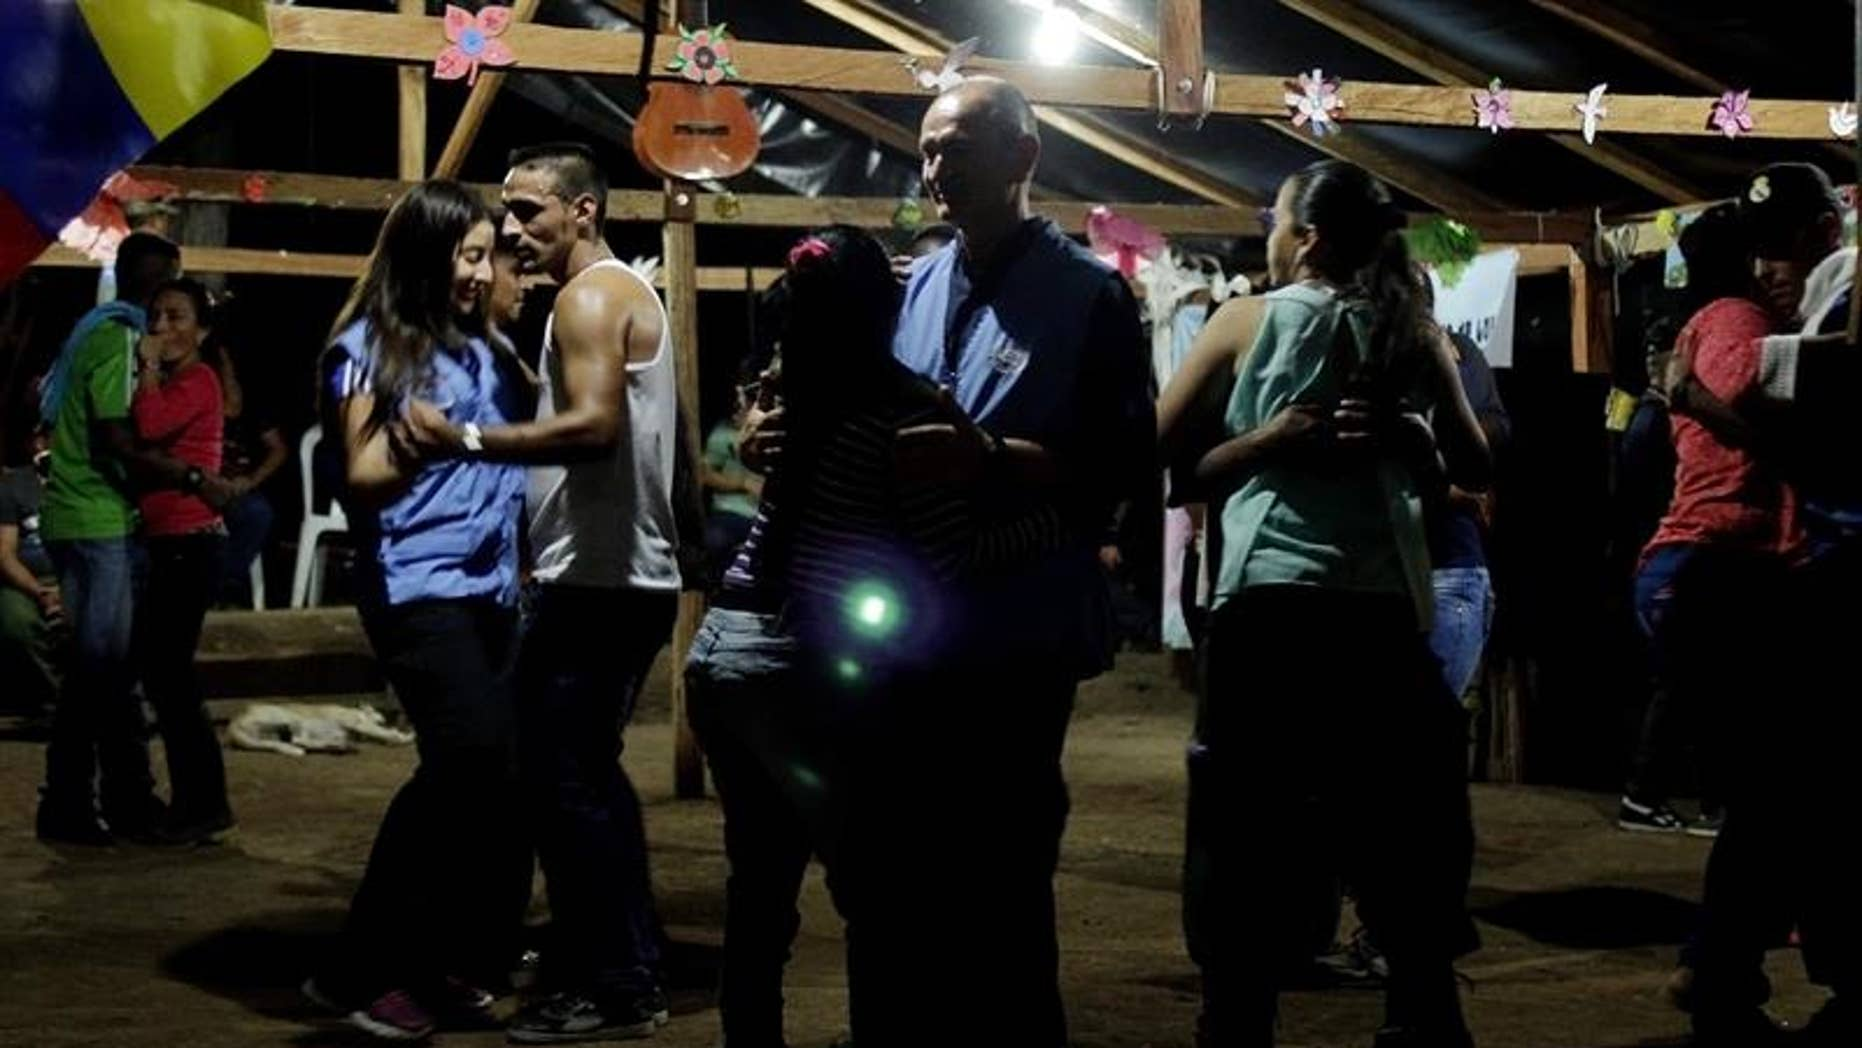 FARC rebels dancing in Colombia.